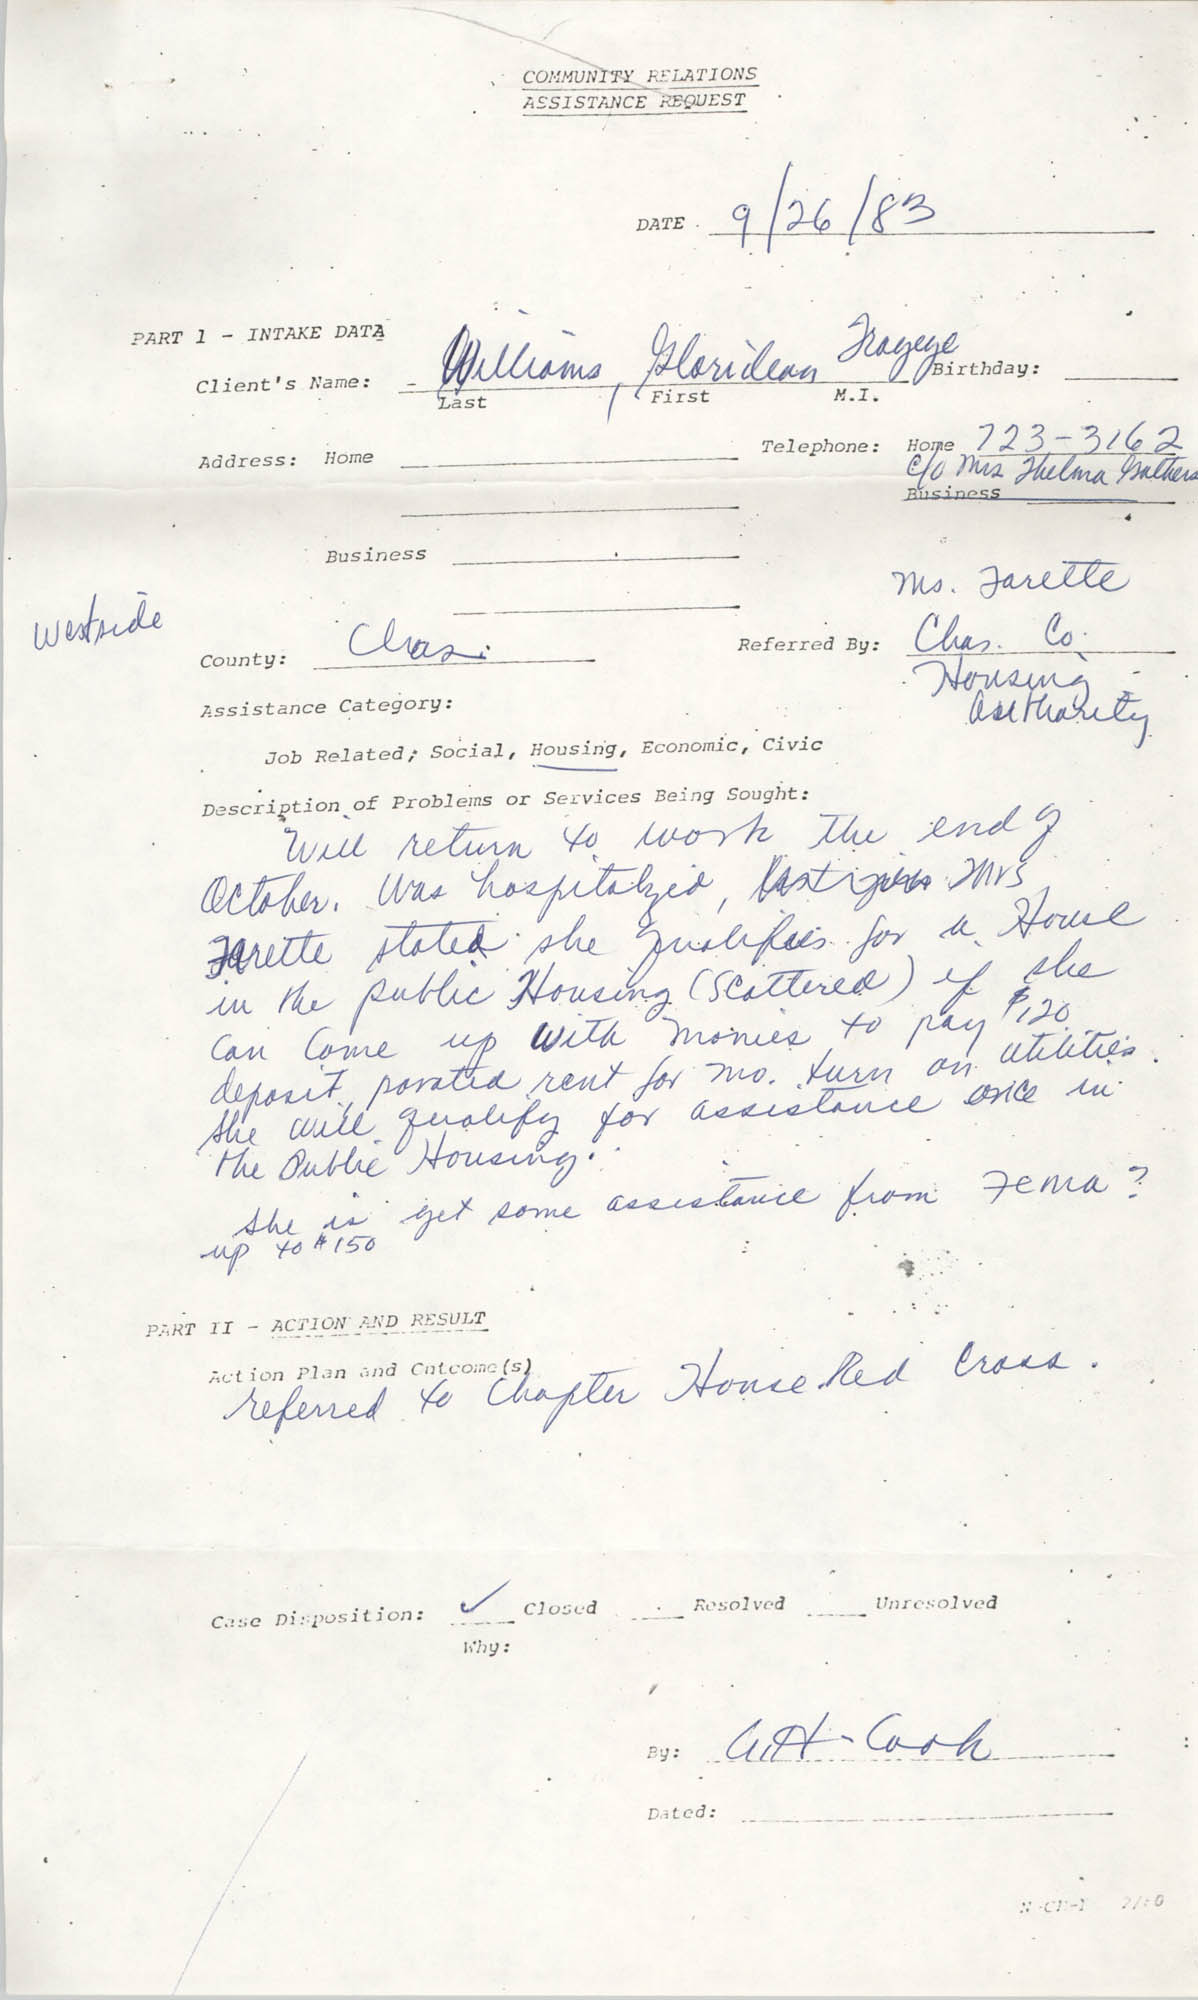 Community Relations Assistance Request, September 26, 1983